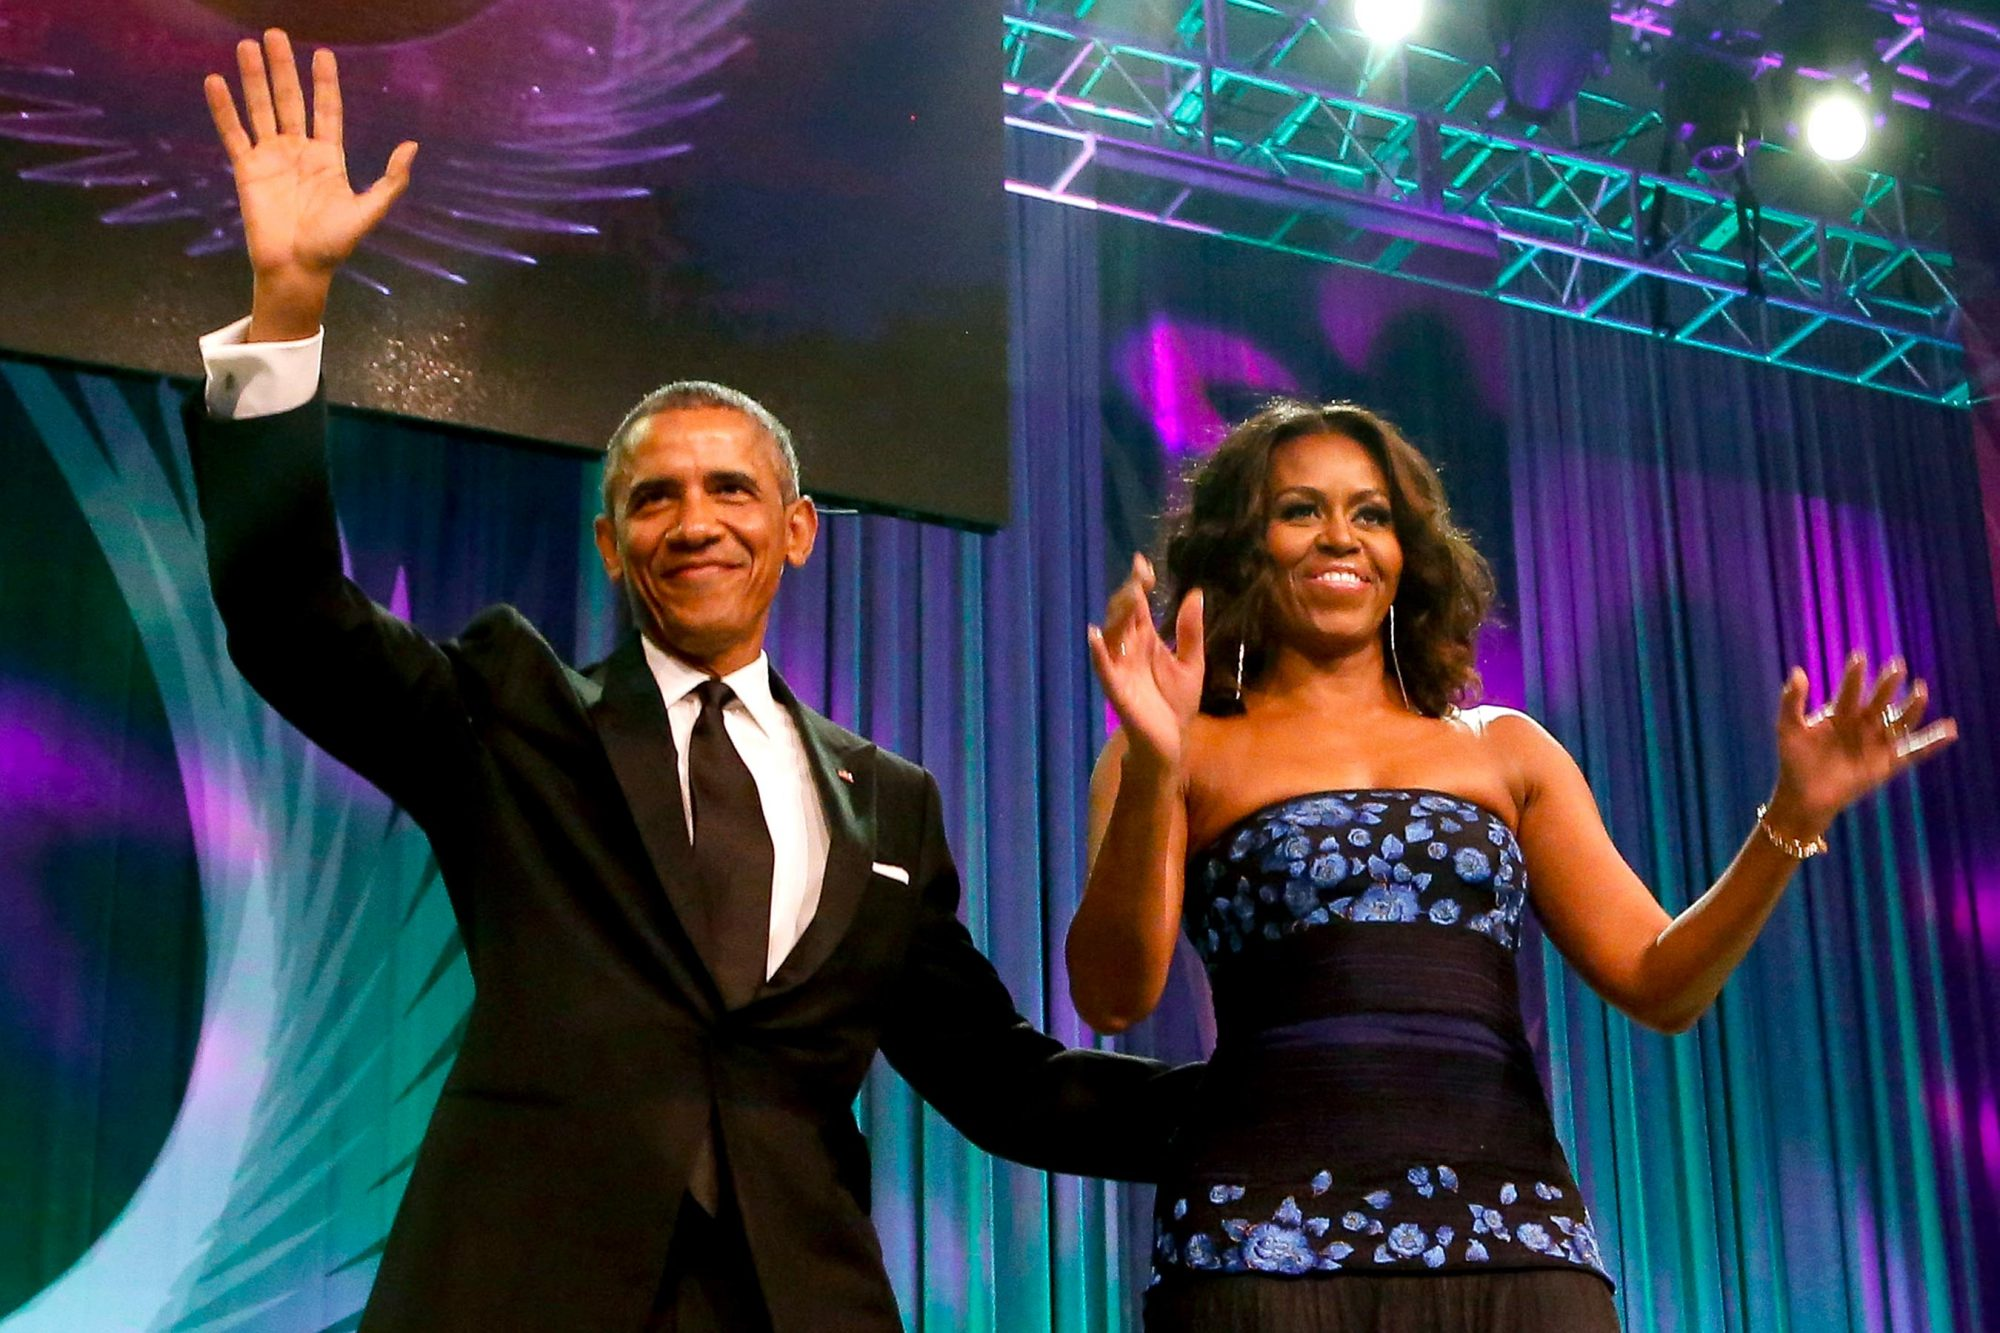 President Obama Attends the Congressional Black Caucus Dinner